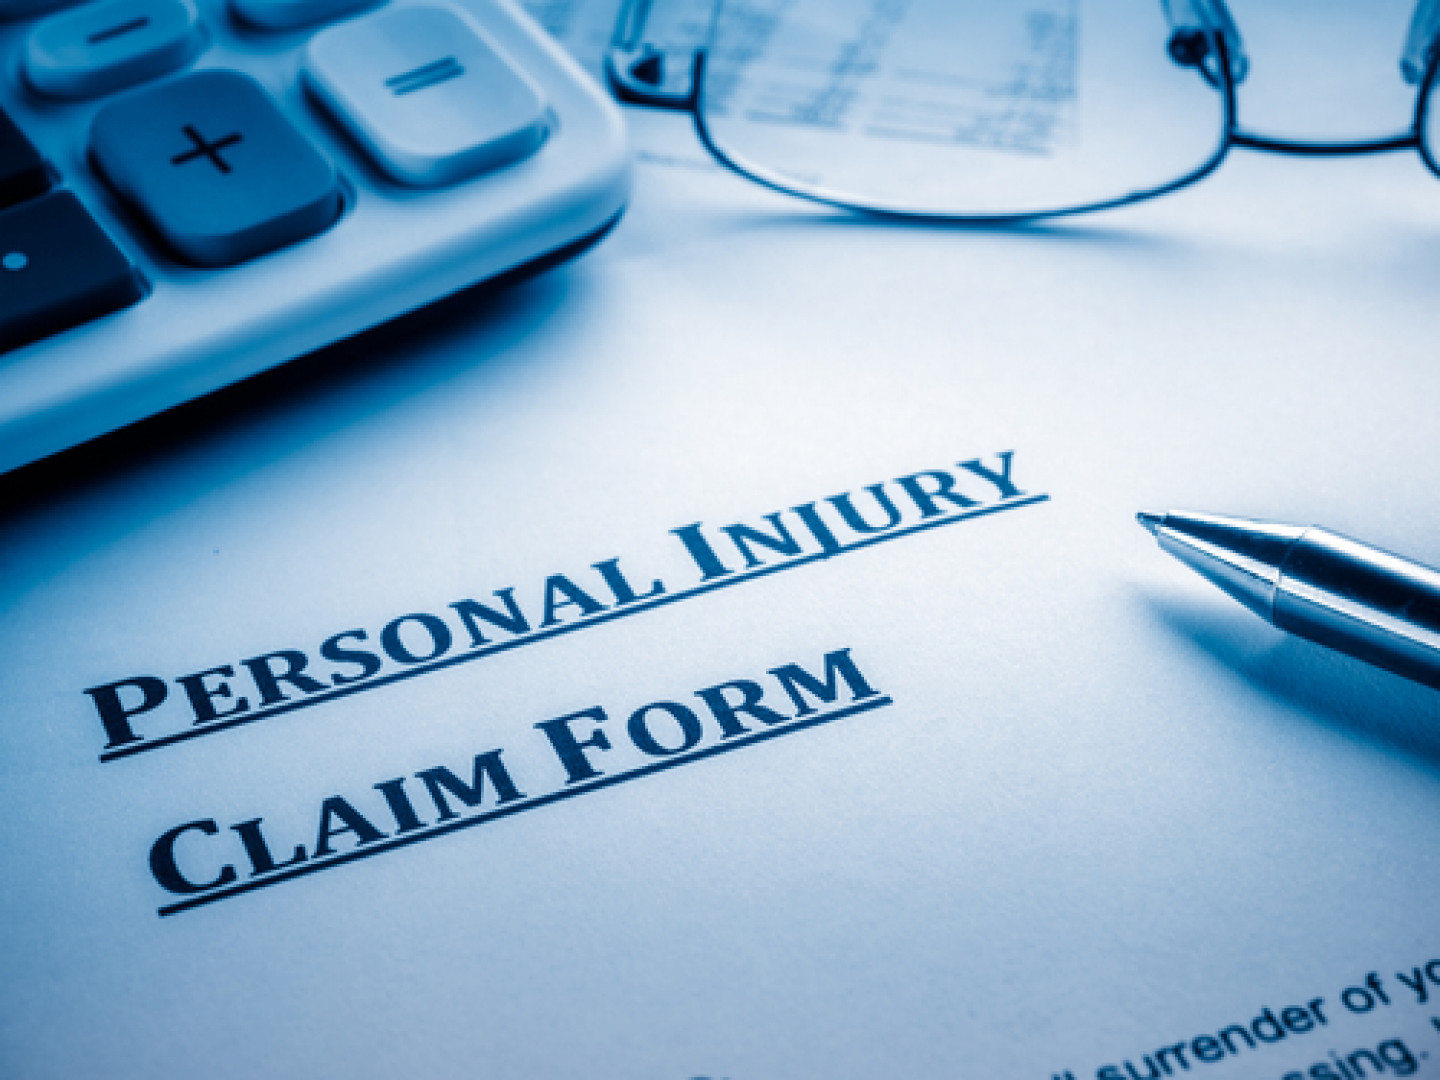 An Injury Should Not Send You Into Financial Hardship